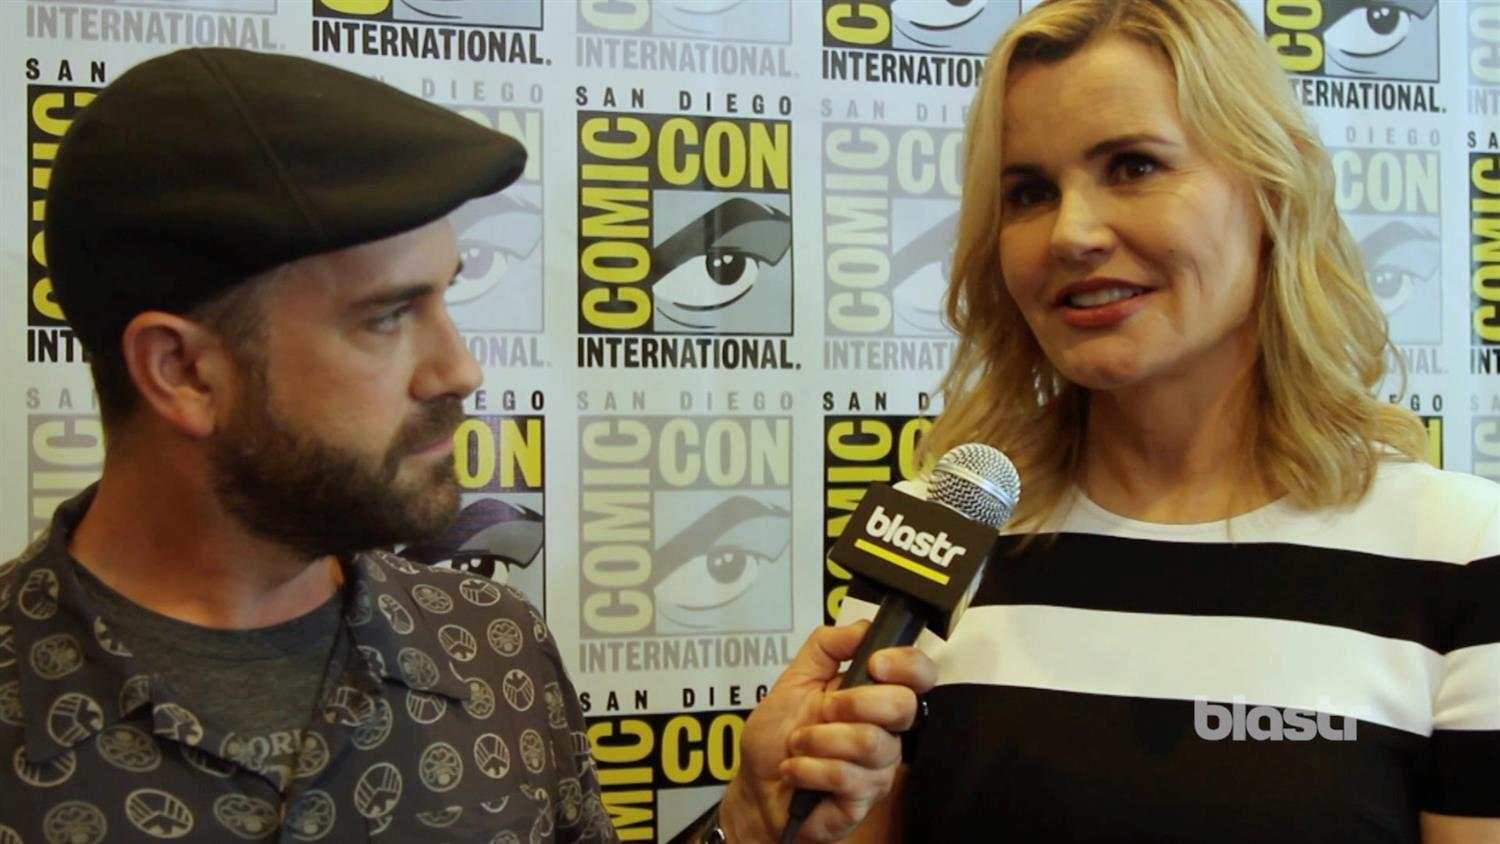 The Exorcist Cast Answers Why They Even Made a TV Show